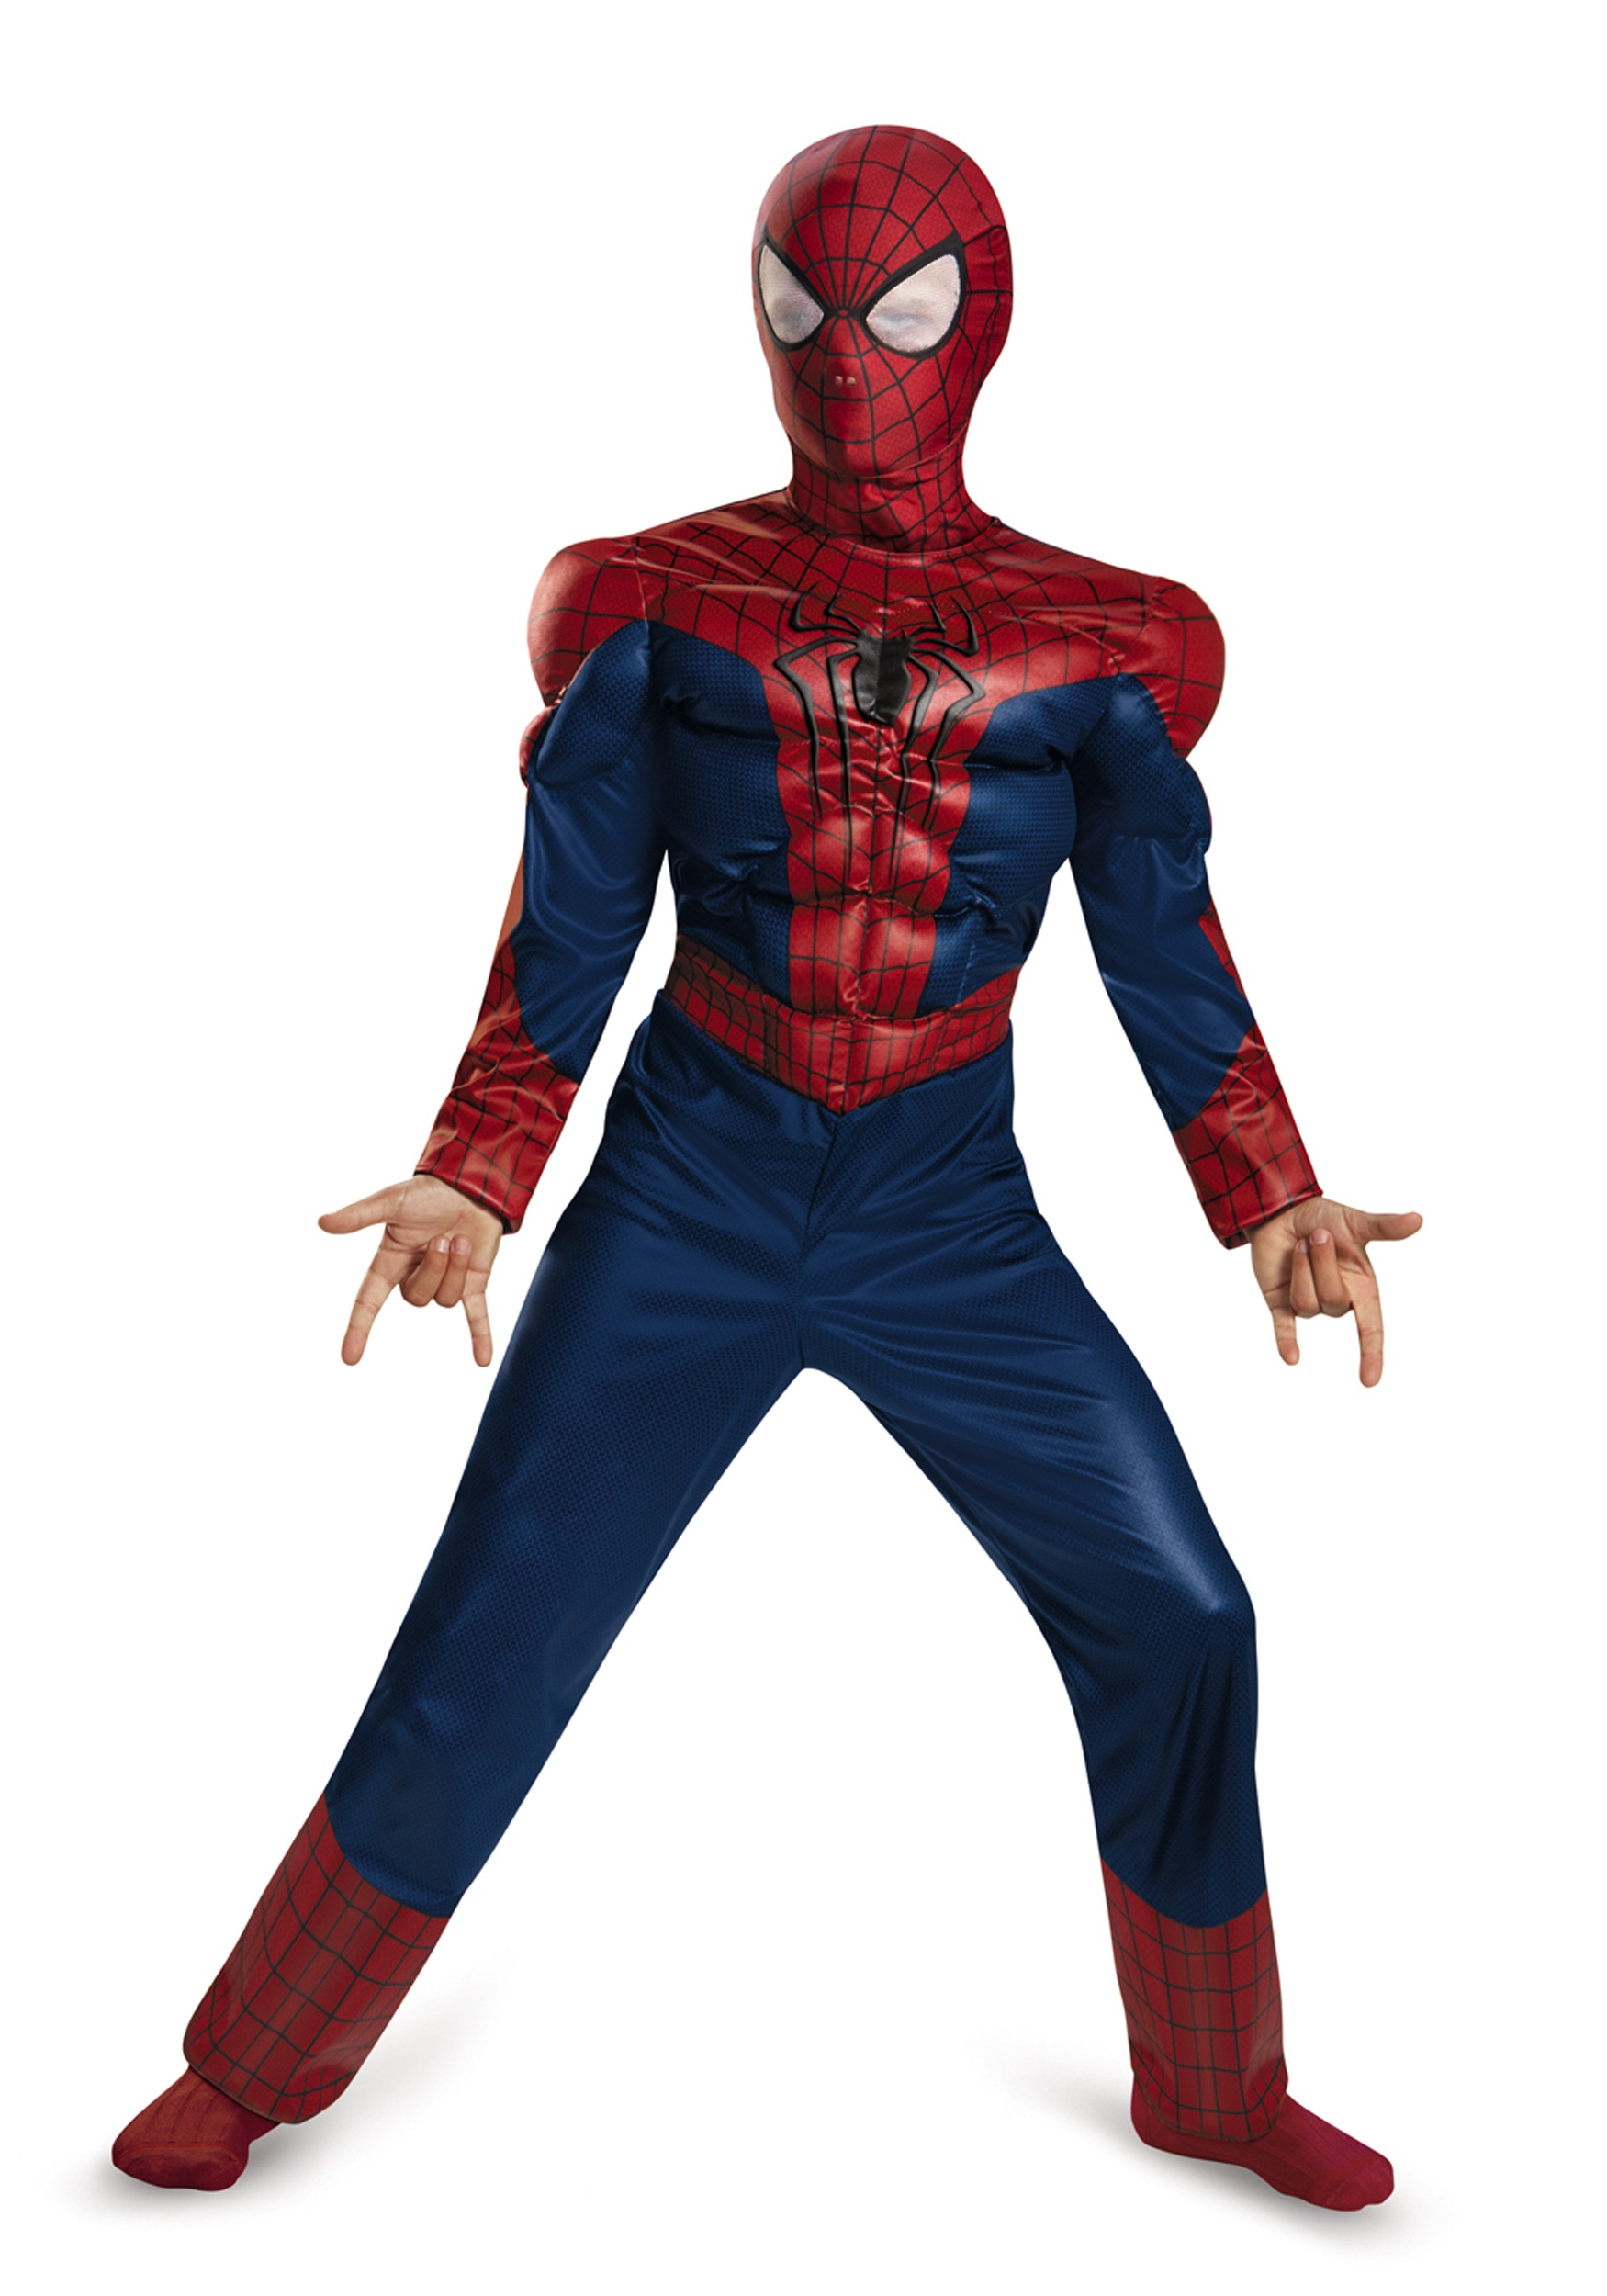 Child Spider-Man 2 Classic Muscle Costume  sc 1 st  Halloween Costumes & Child Spider-Man 2 Classic Muscle Costume - Halloween Costumes